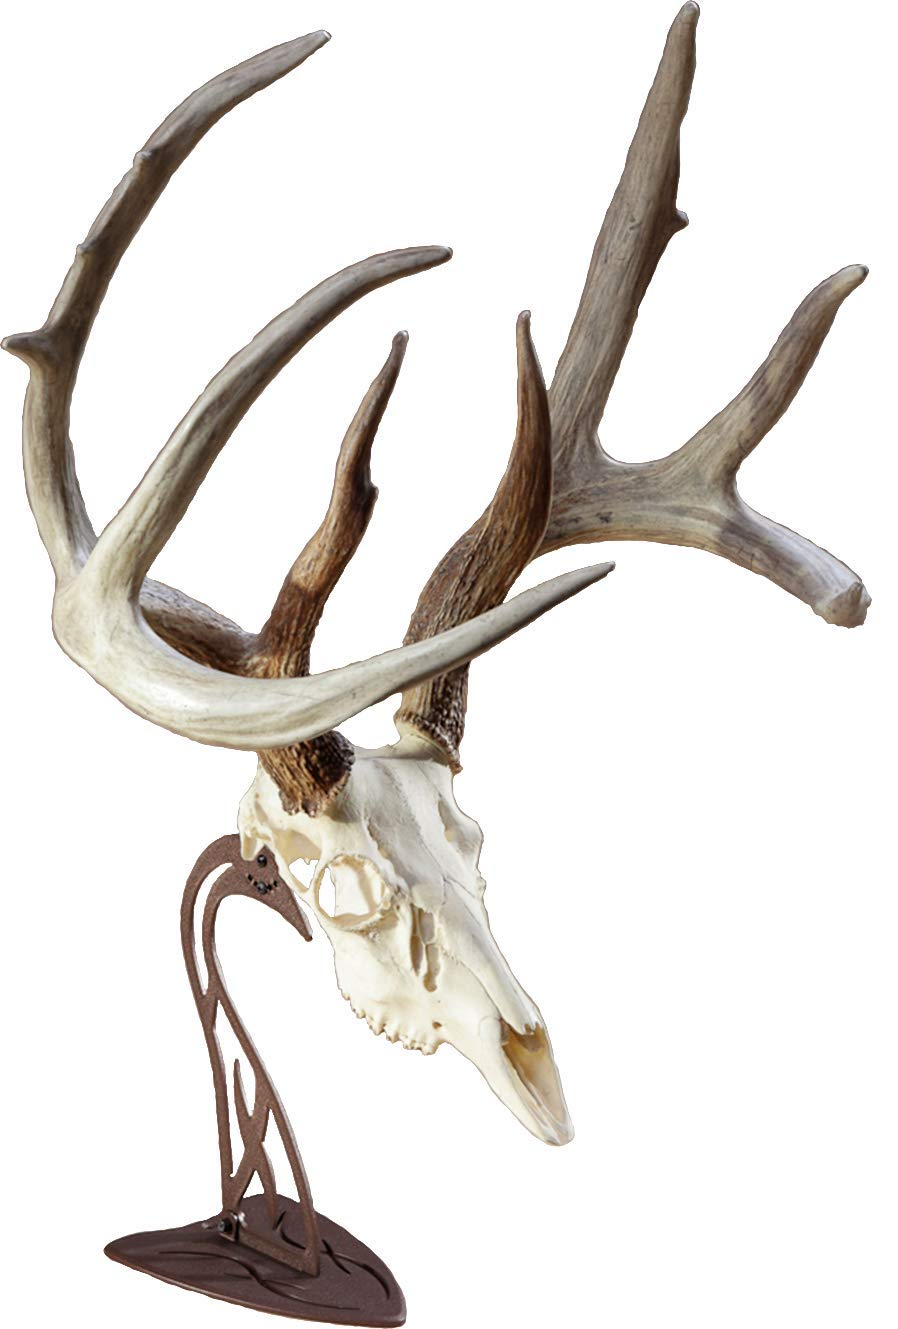 Skull Hooker Table Hooker European Trophy Mount - Perfect Kit for Table Display of Taxidermy Deer Antlers and other Skulls - Robust Brown